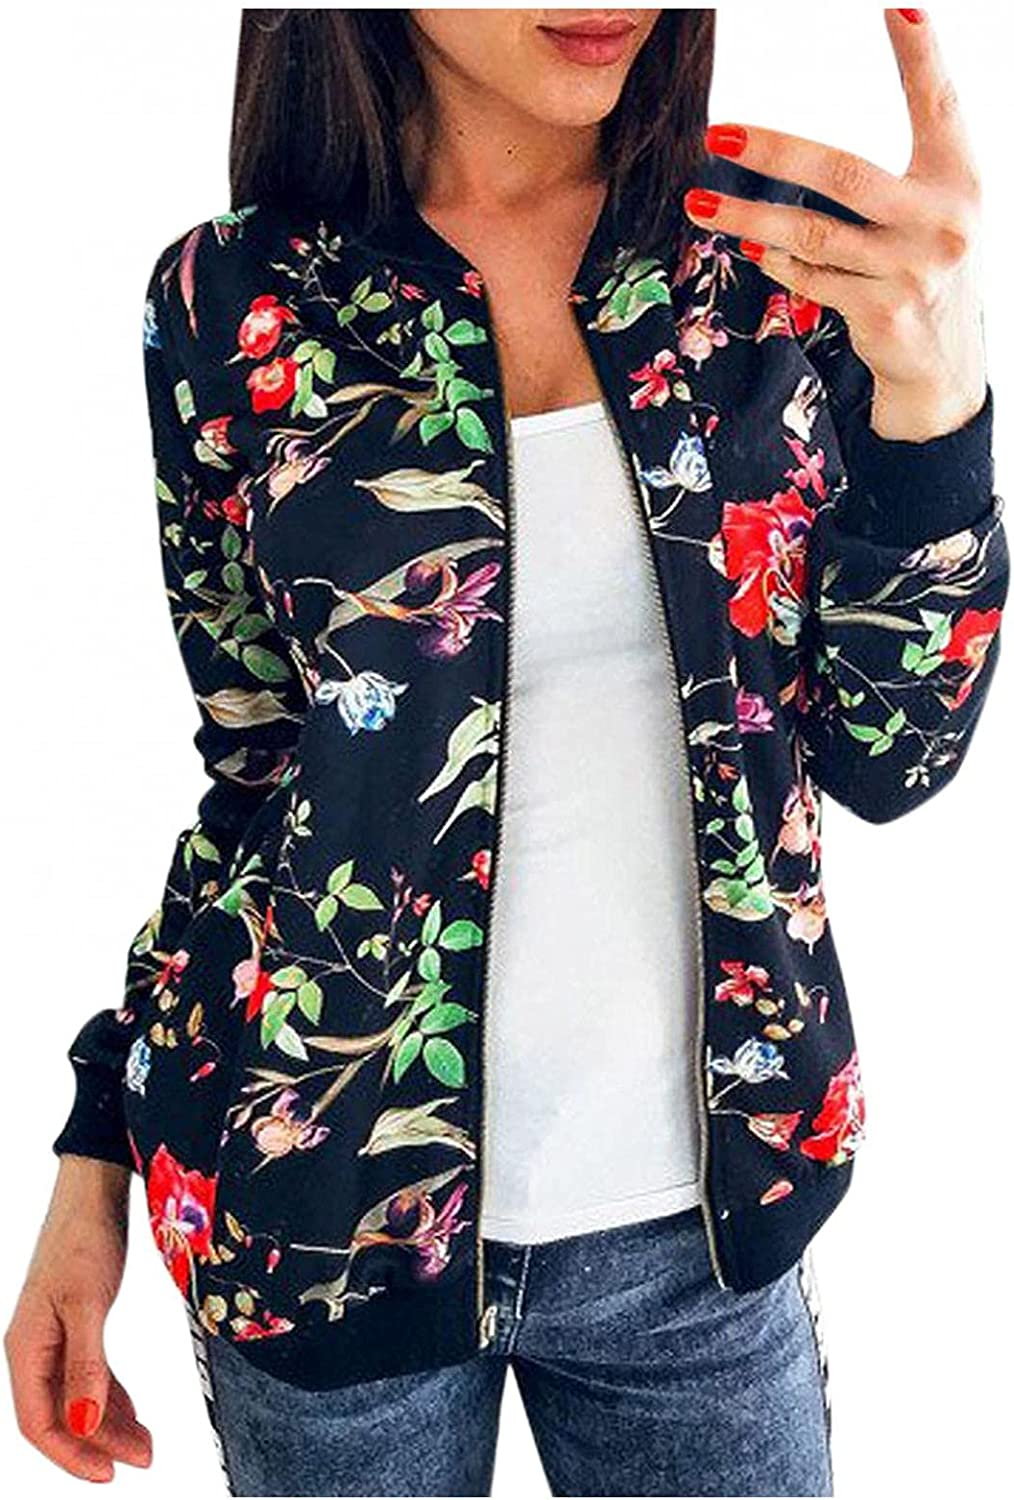 Womens Casual Zip Up Jackets Long Sleeve Floral Print Baseball Bomber Jacket Stand Collar Short Outwear Coat Tops